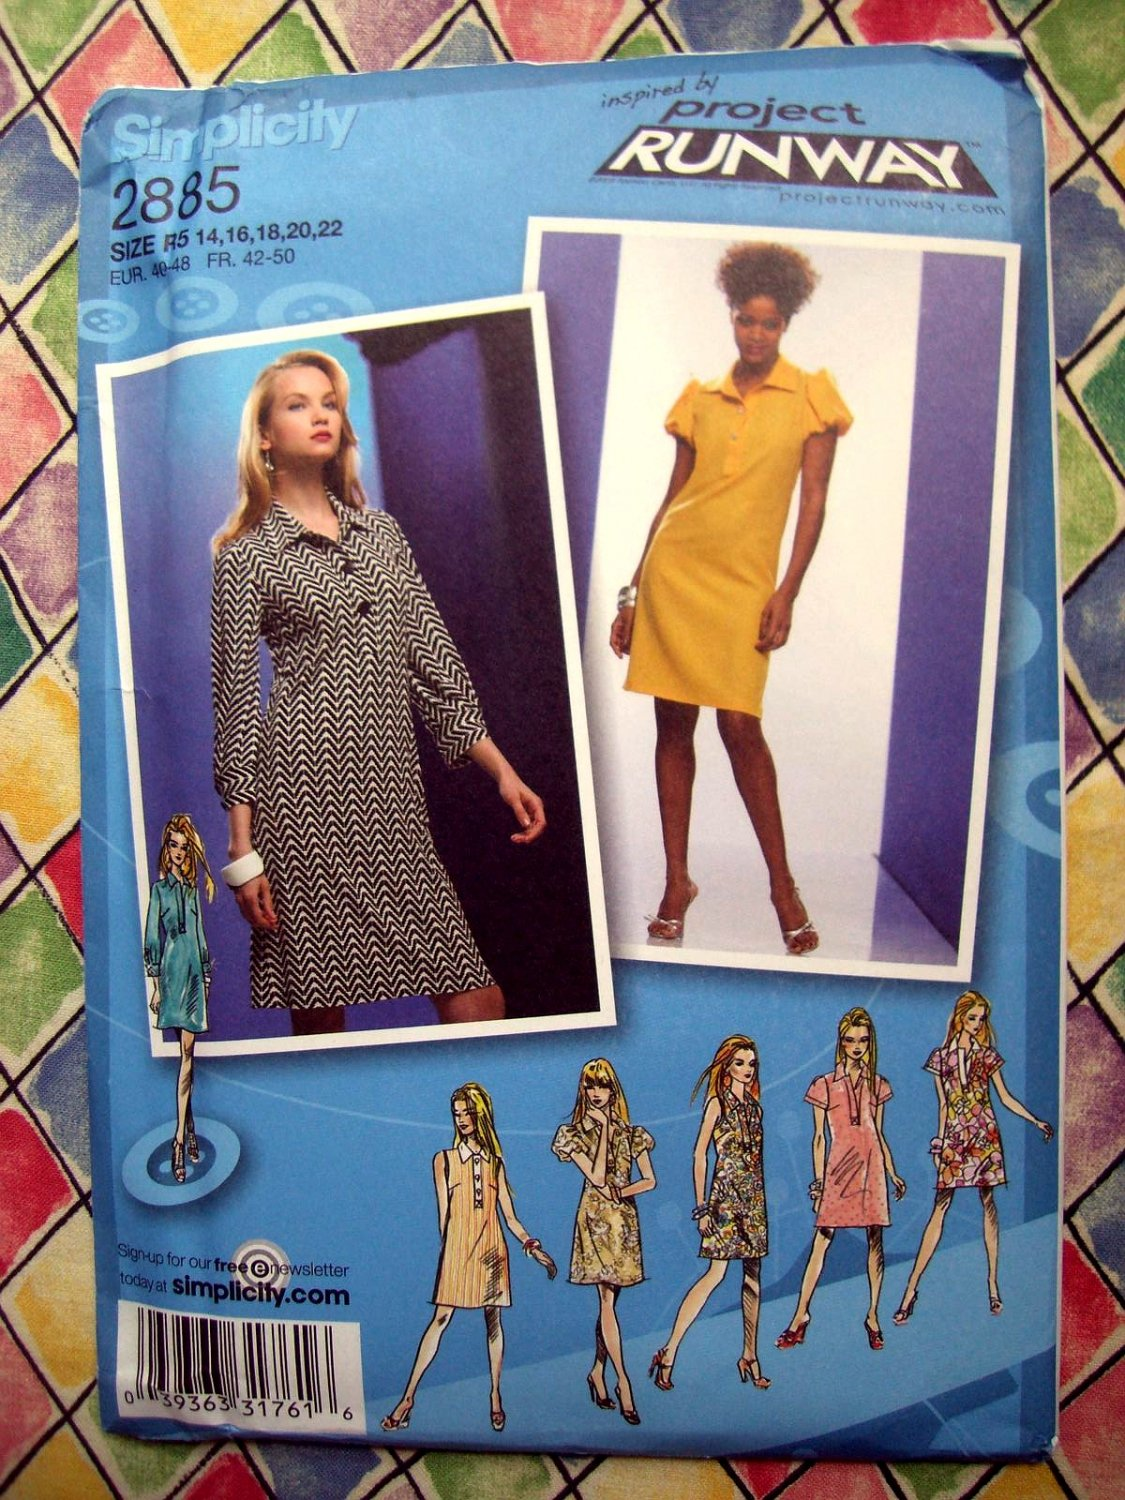 SOLD! Project Runway Simplicity Pattern # 2885 Womans Pullover Dress Top Size 12 14 16 20 22